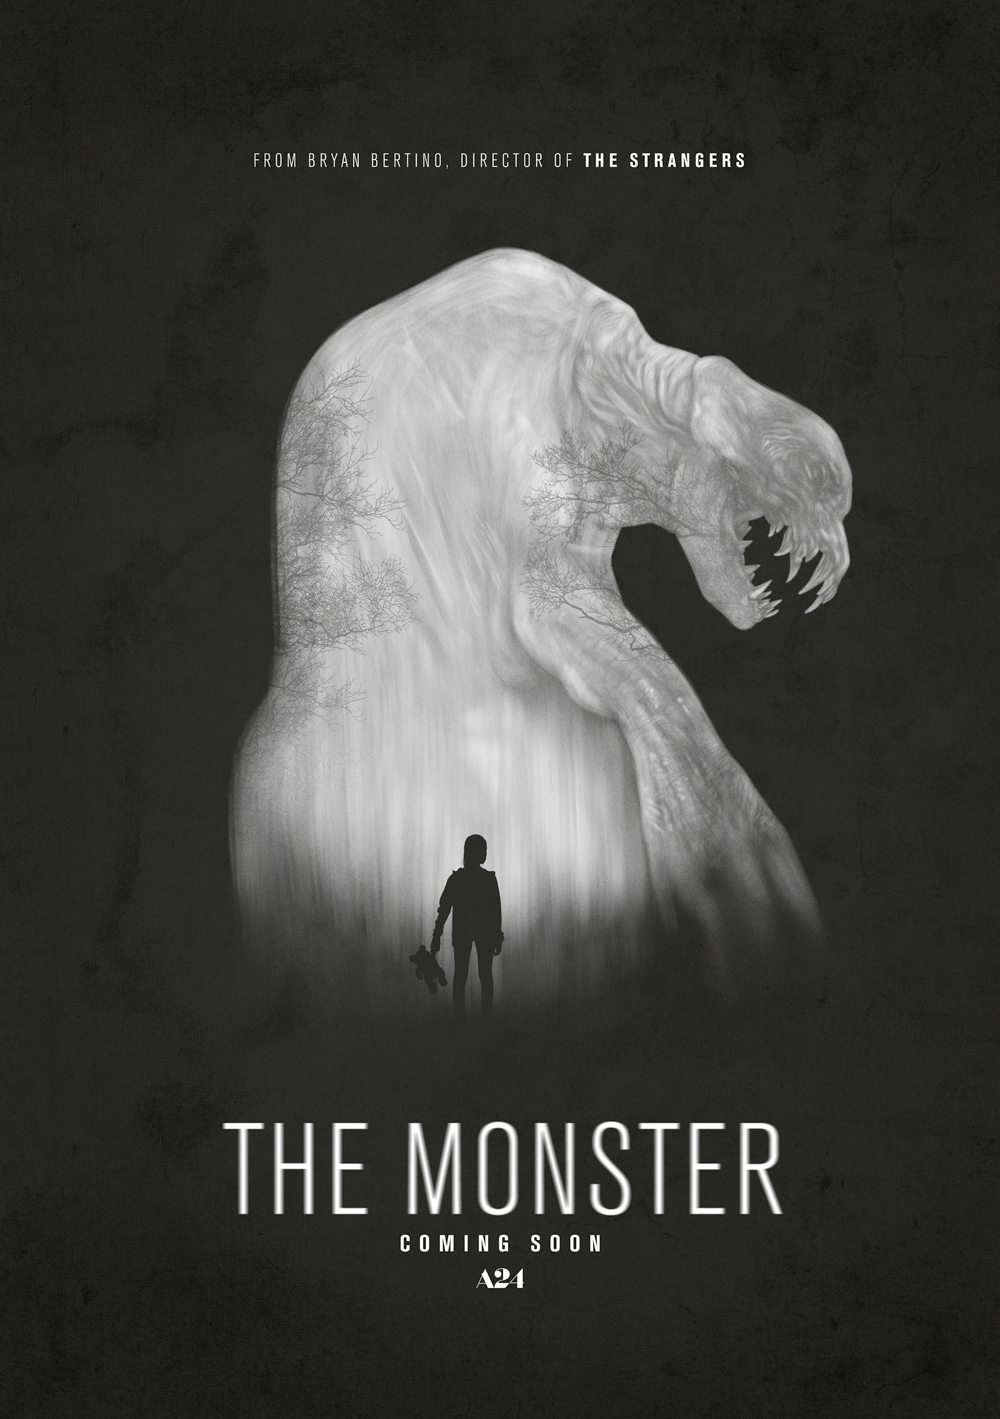 themonster poster - Dread Central's Best and Worst Horror Films of 2016